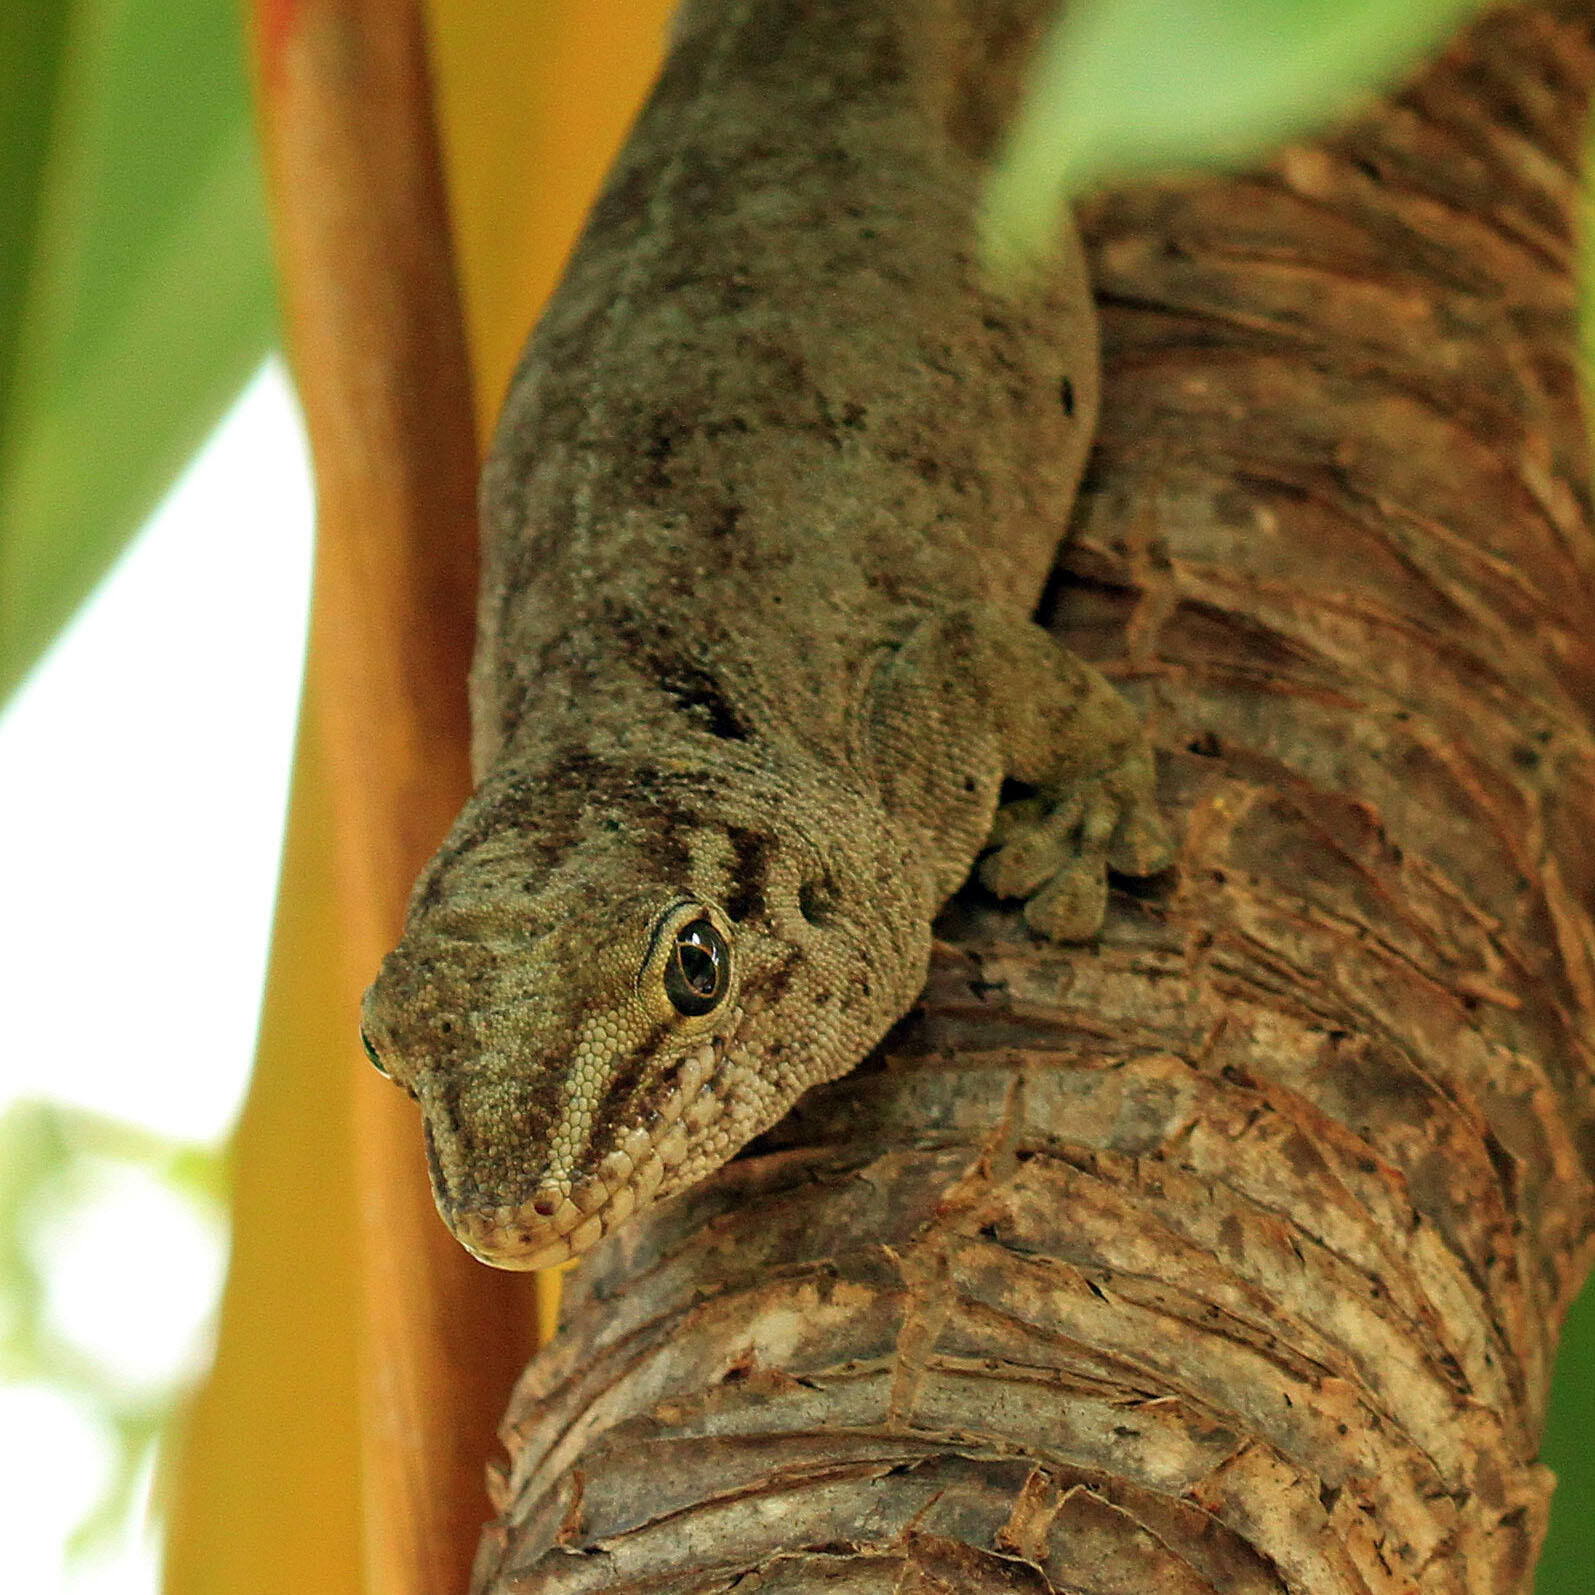 The 25 cm long Günther's gecko is found on two islets off the coast of Mauritius: Round Island and Ile aux Aigrettes.